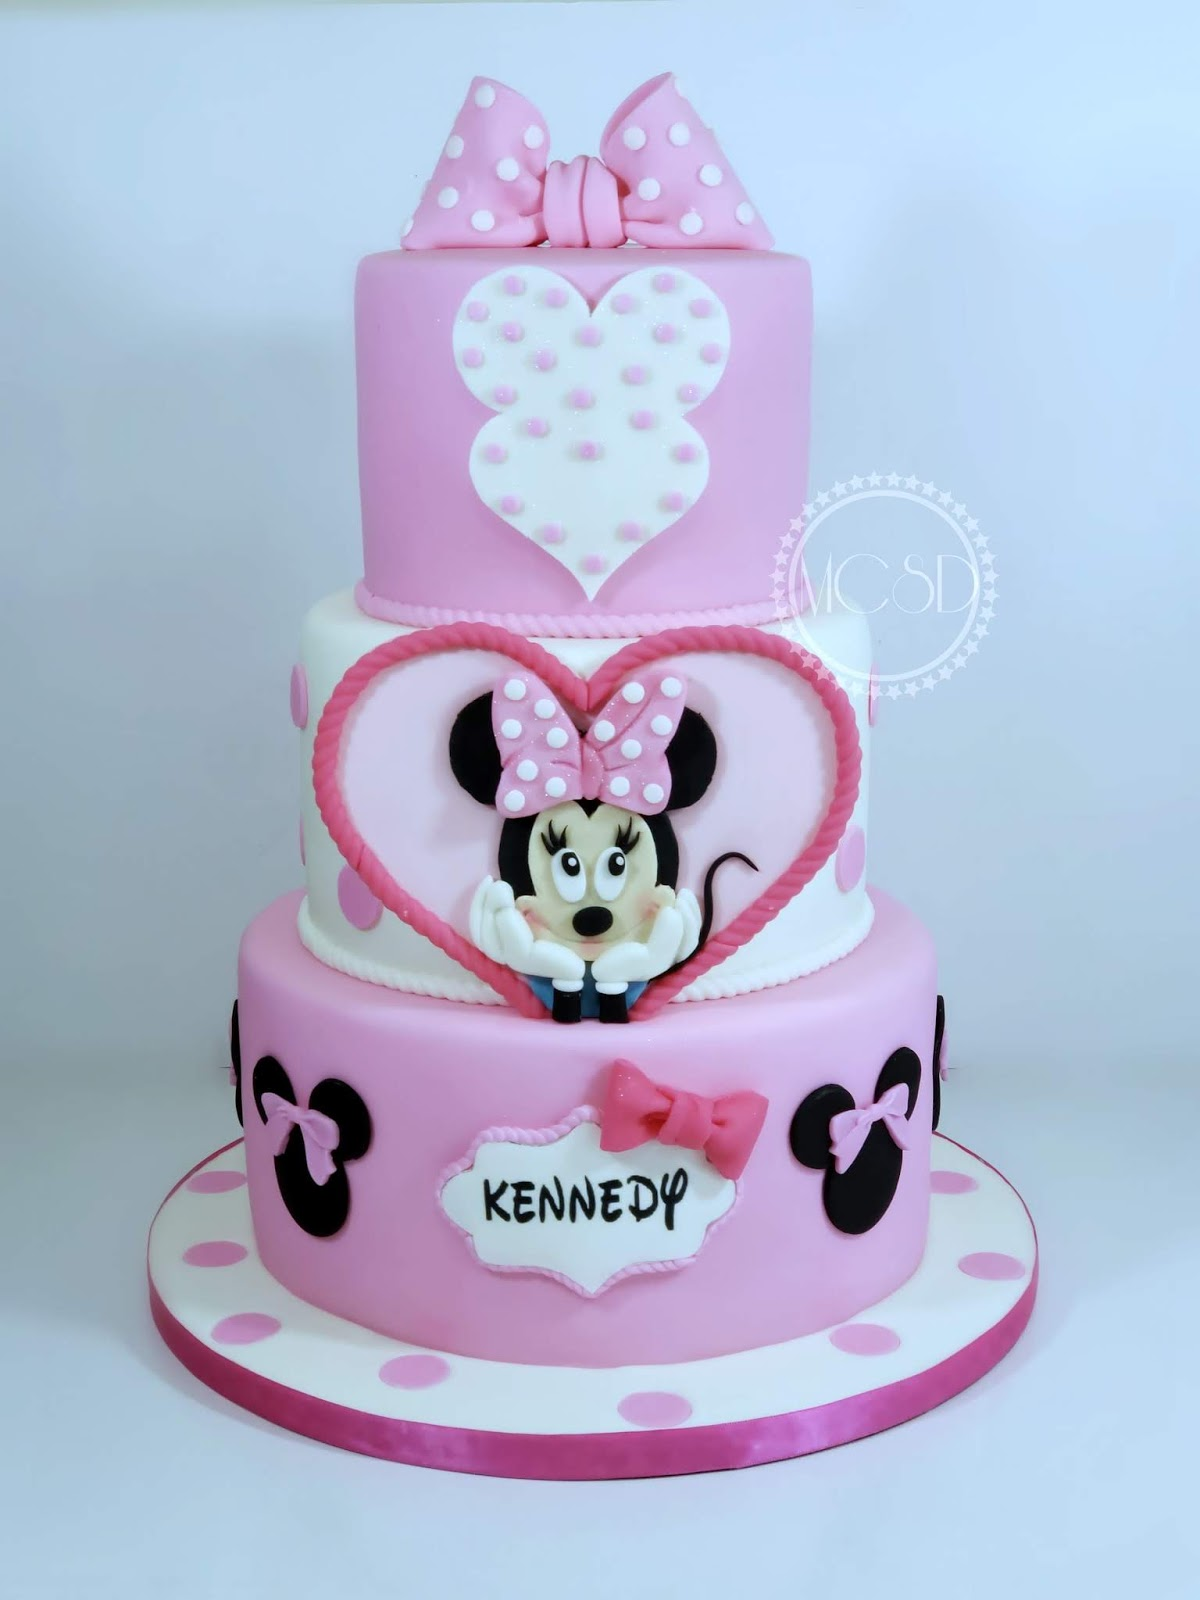 Minnie Mouse Baby Shower Cake : minnie, mouse, shower, Shower, Minnie, Mouse, Viewer